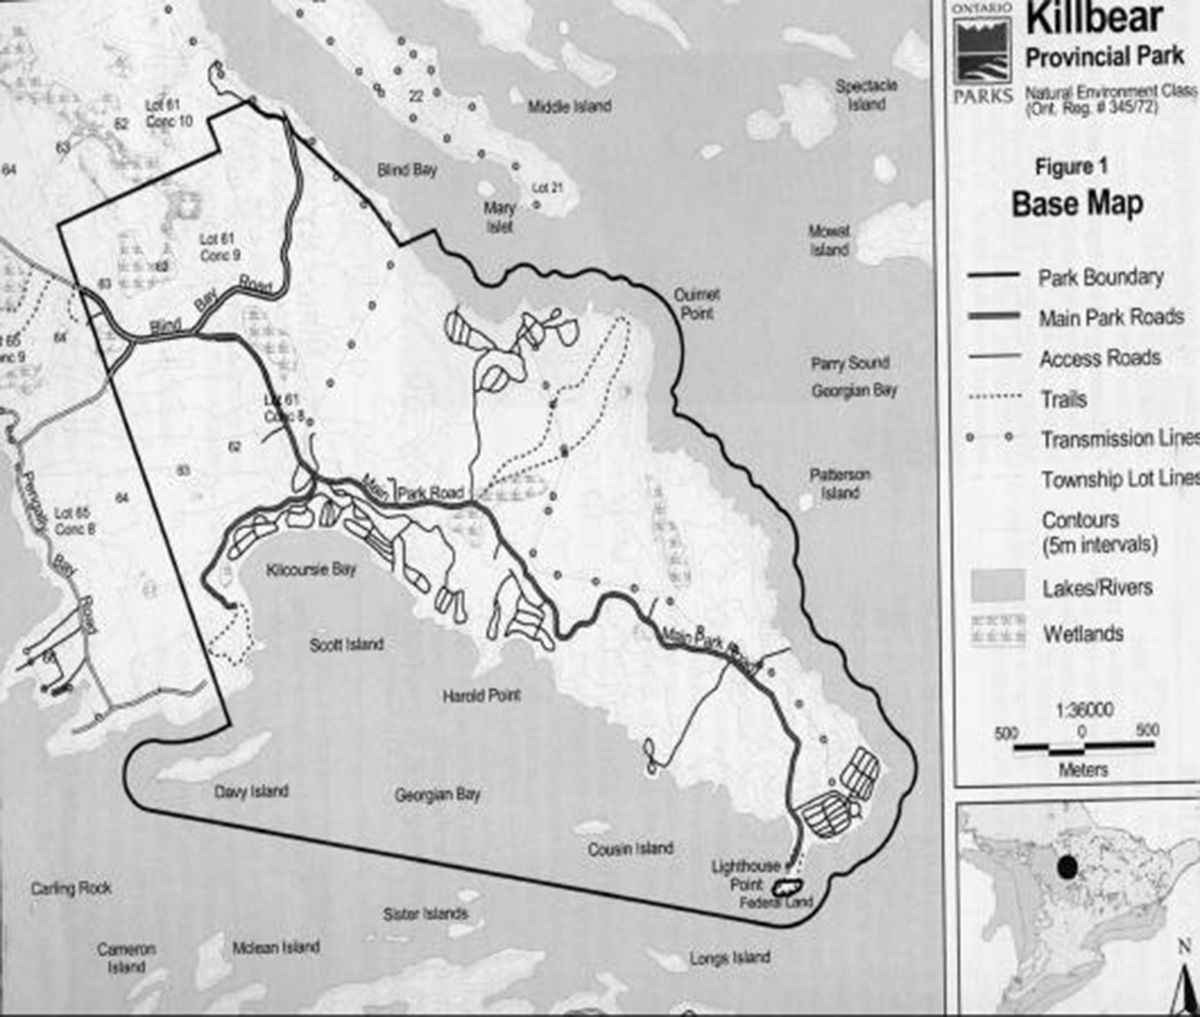 Killbear Provincial Park Map Killbear Provincial Park Management Plan | Ontario.ca Killbear Provincial Park Map